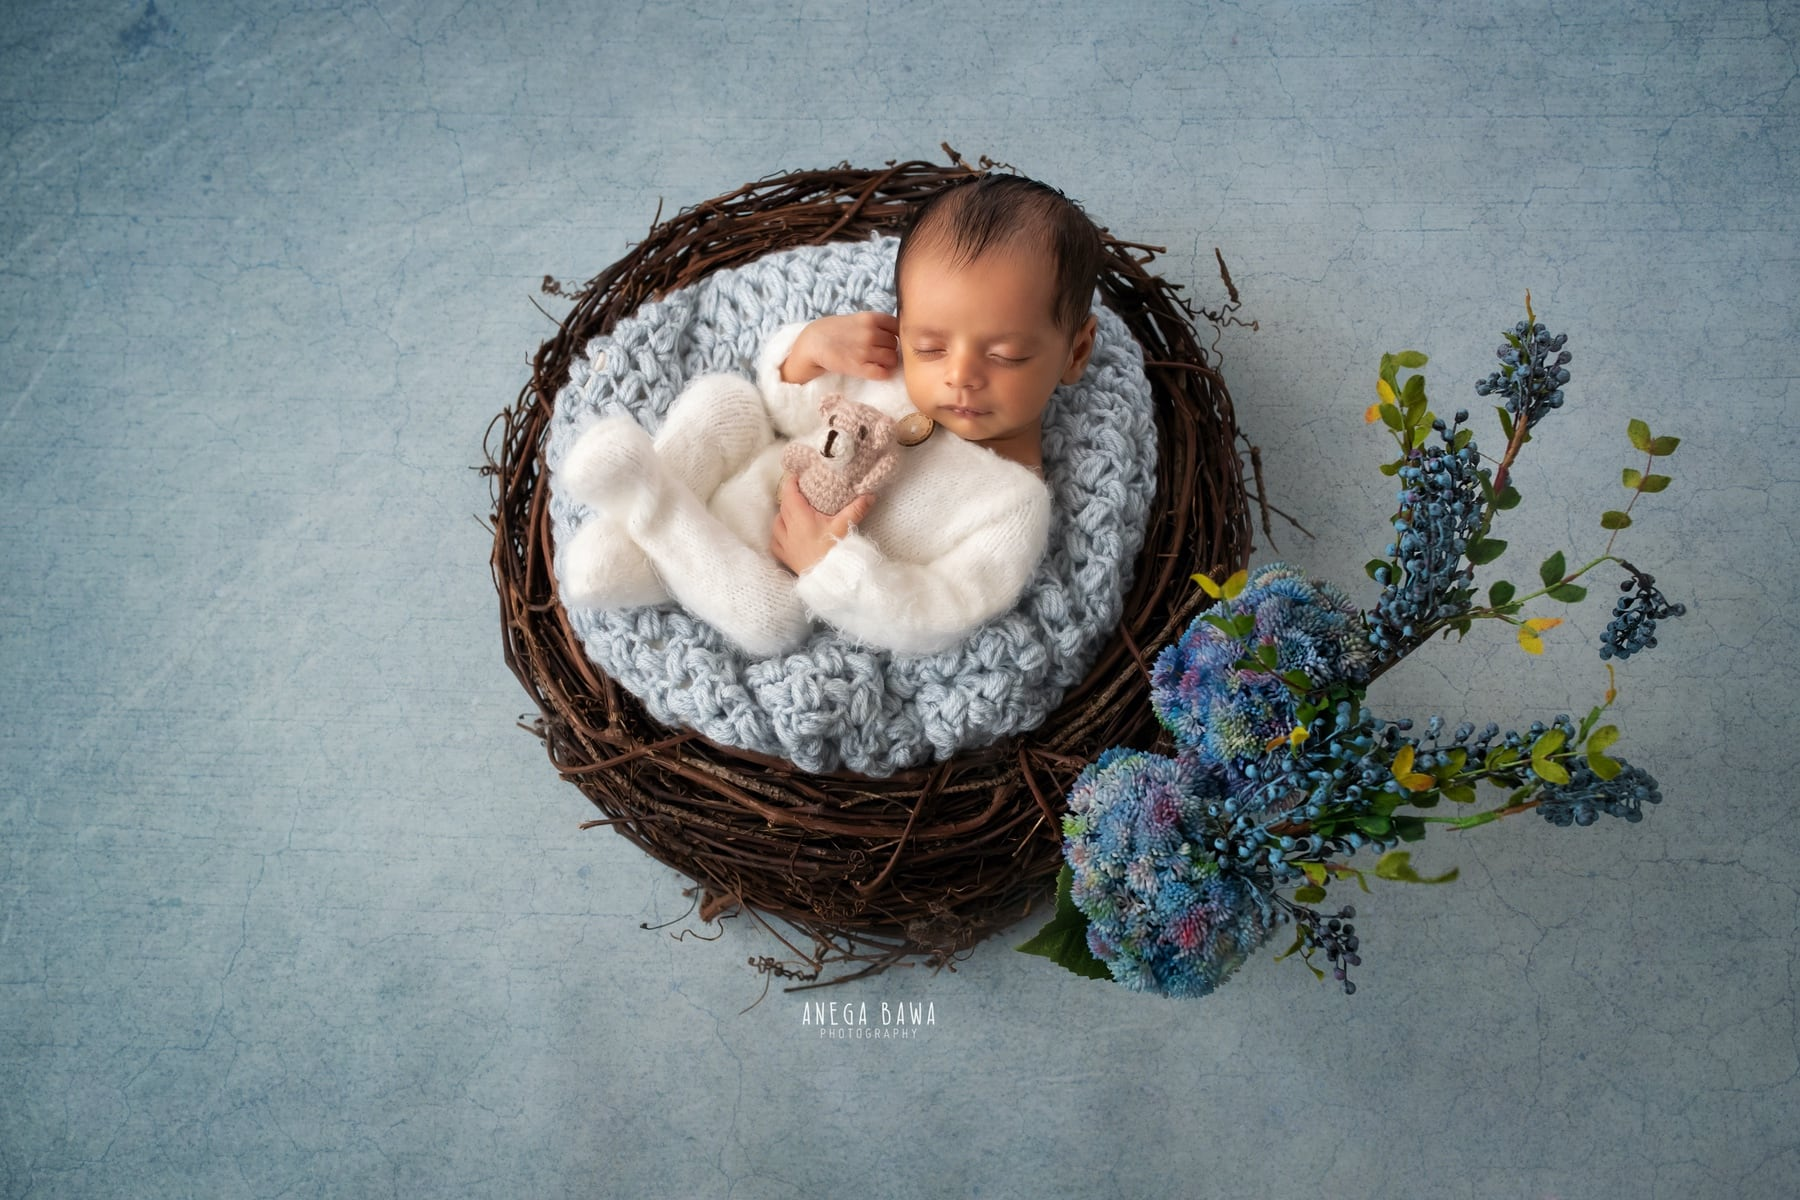 blue floral newborn photography delhi 23 days baby boy photoshoot gurgaon anega bawa